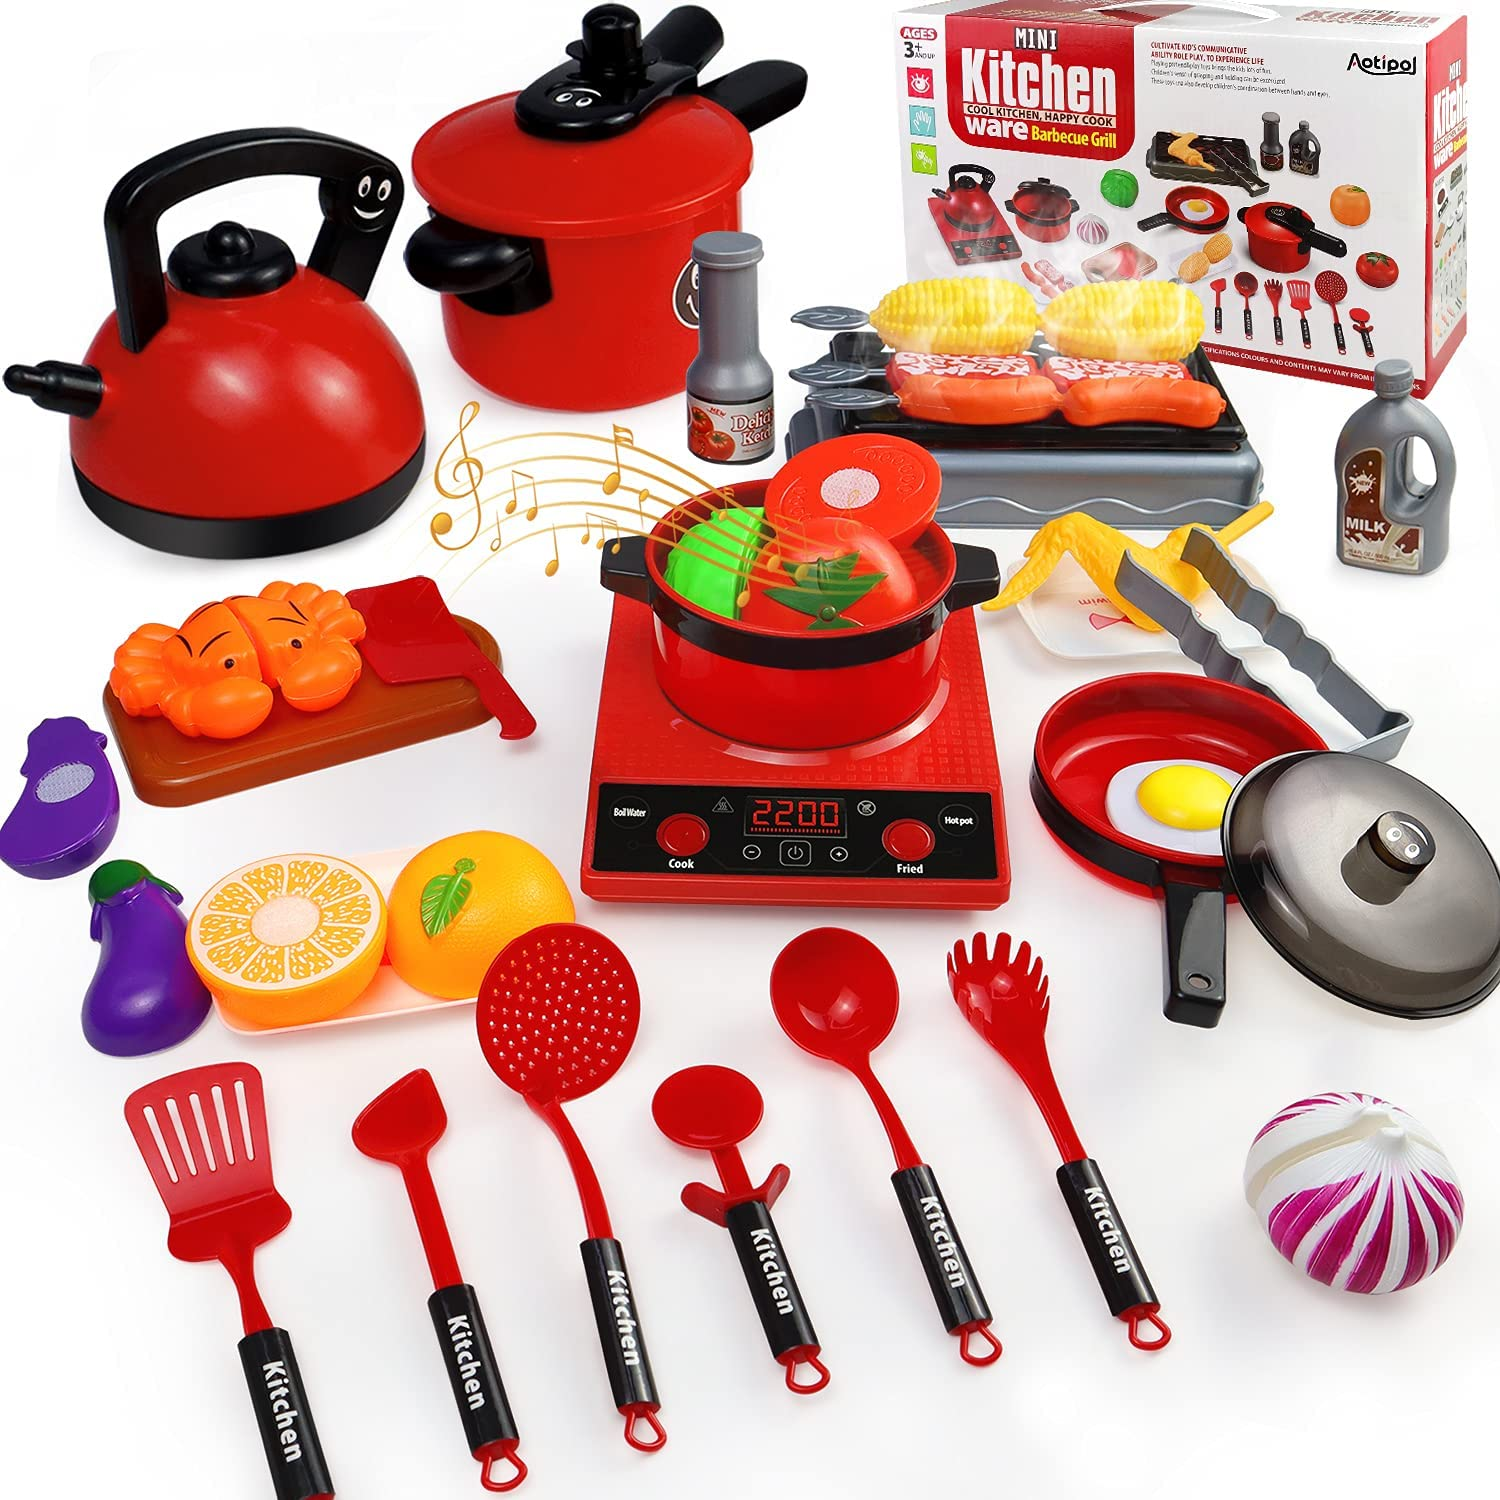 aotipol Play Kitchen Accessories Set with Sound - Kids Kitchen Pretend Toys with Pots & Pans, BBQ Grill, Cutting Play Food, Cookware Utensils - Educational Gift for Boys Girls 3 4 5 6 Years Old